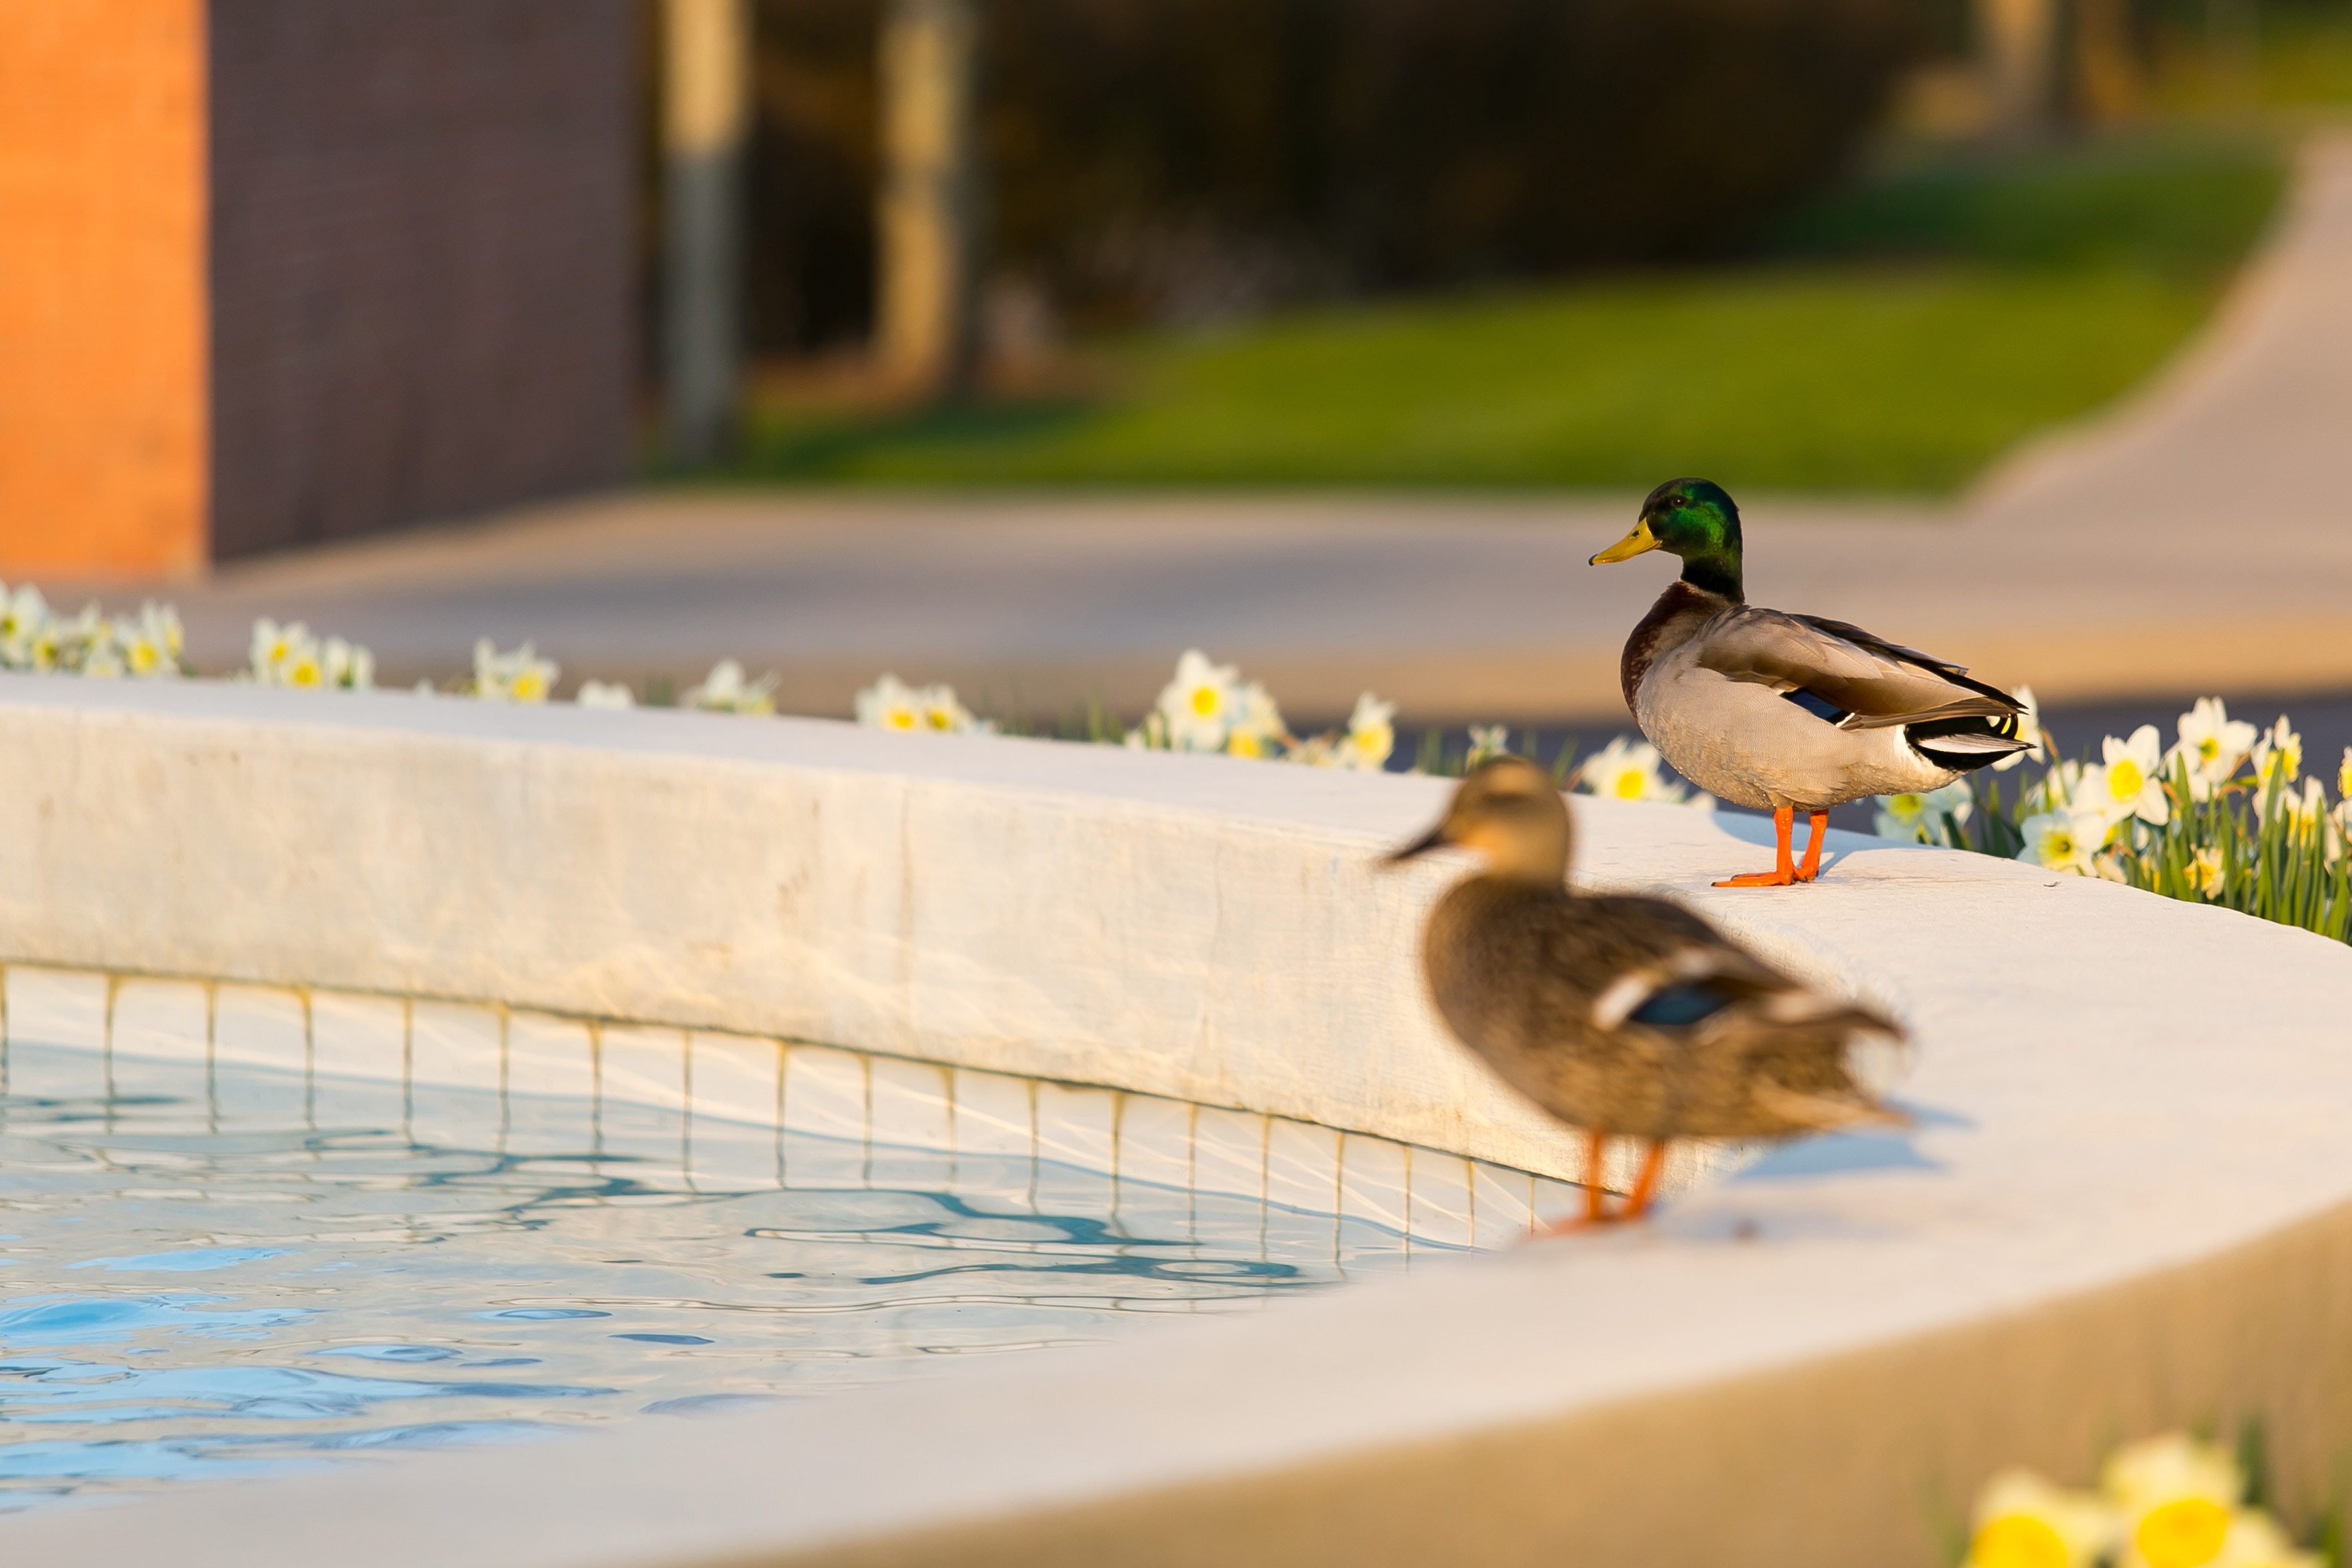 Two ducks sitting around a pond in the yard of a prefabricated home.